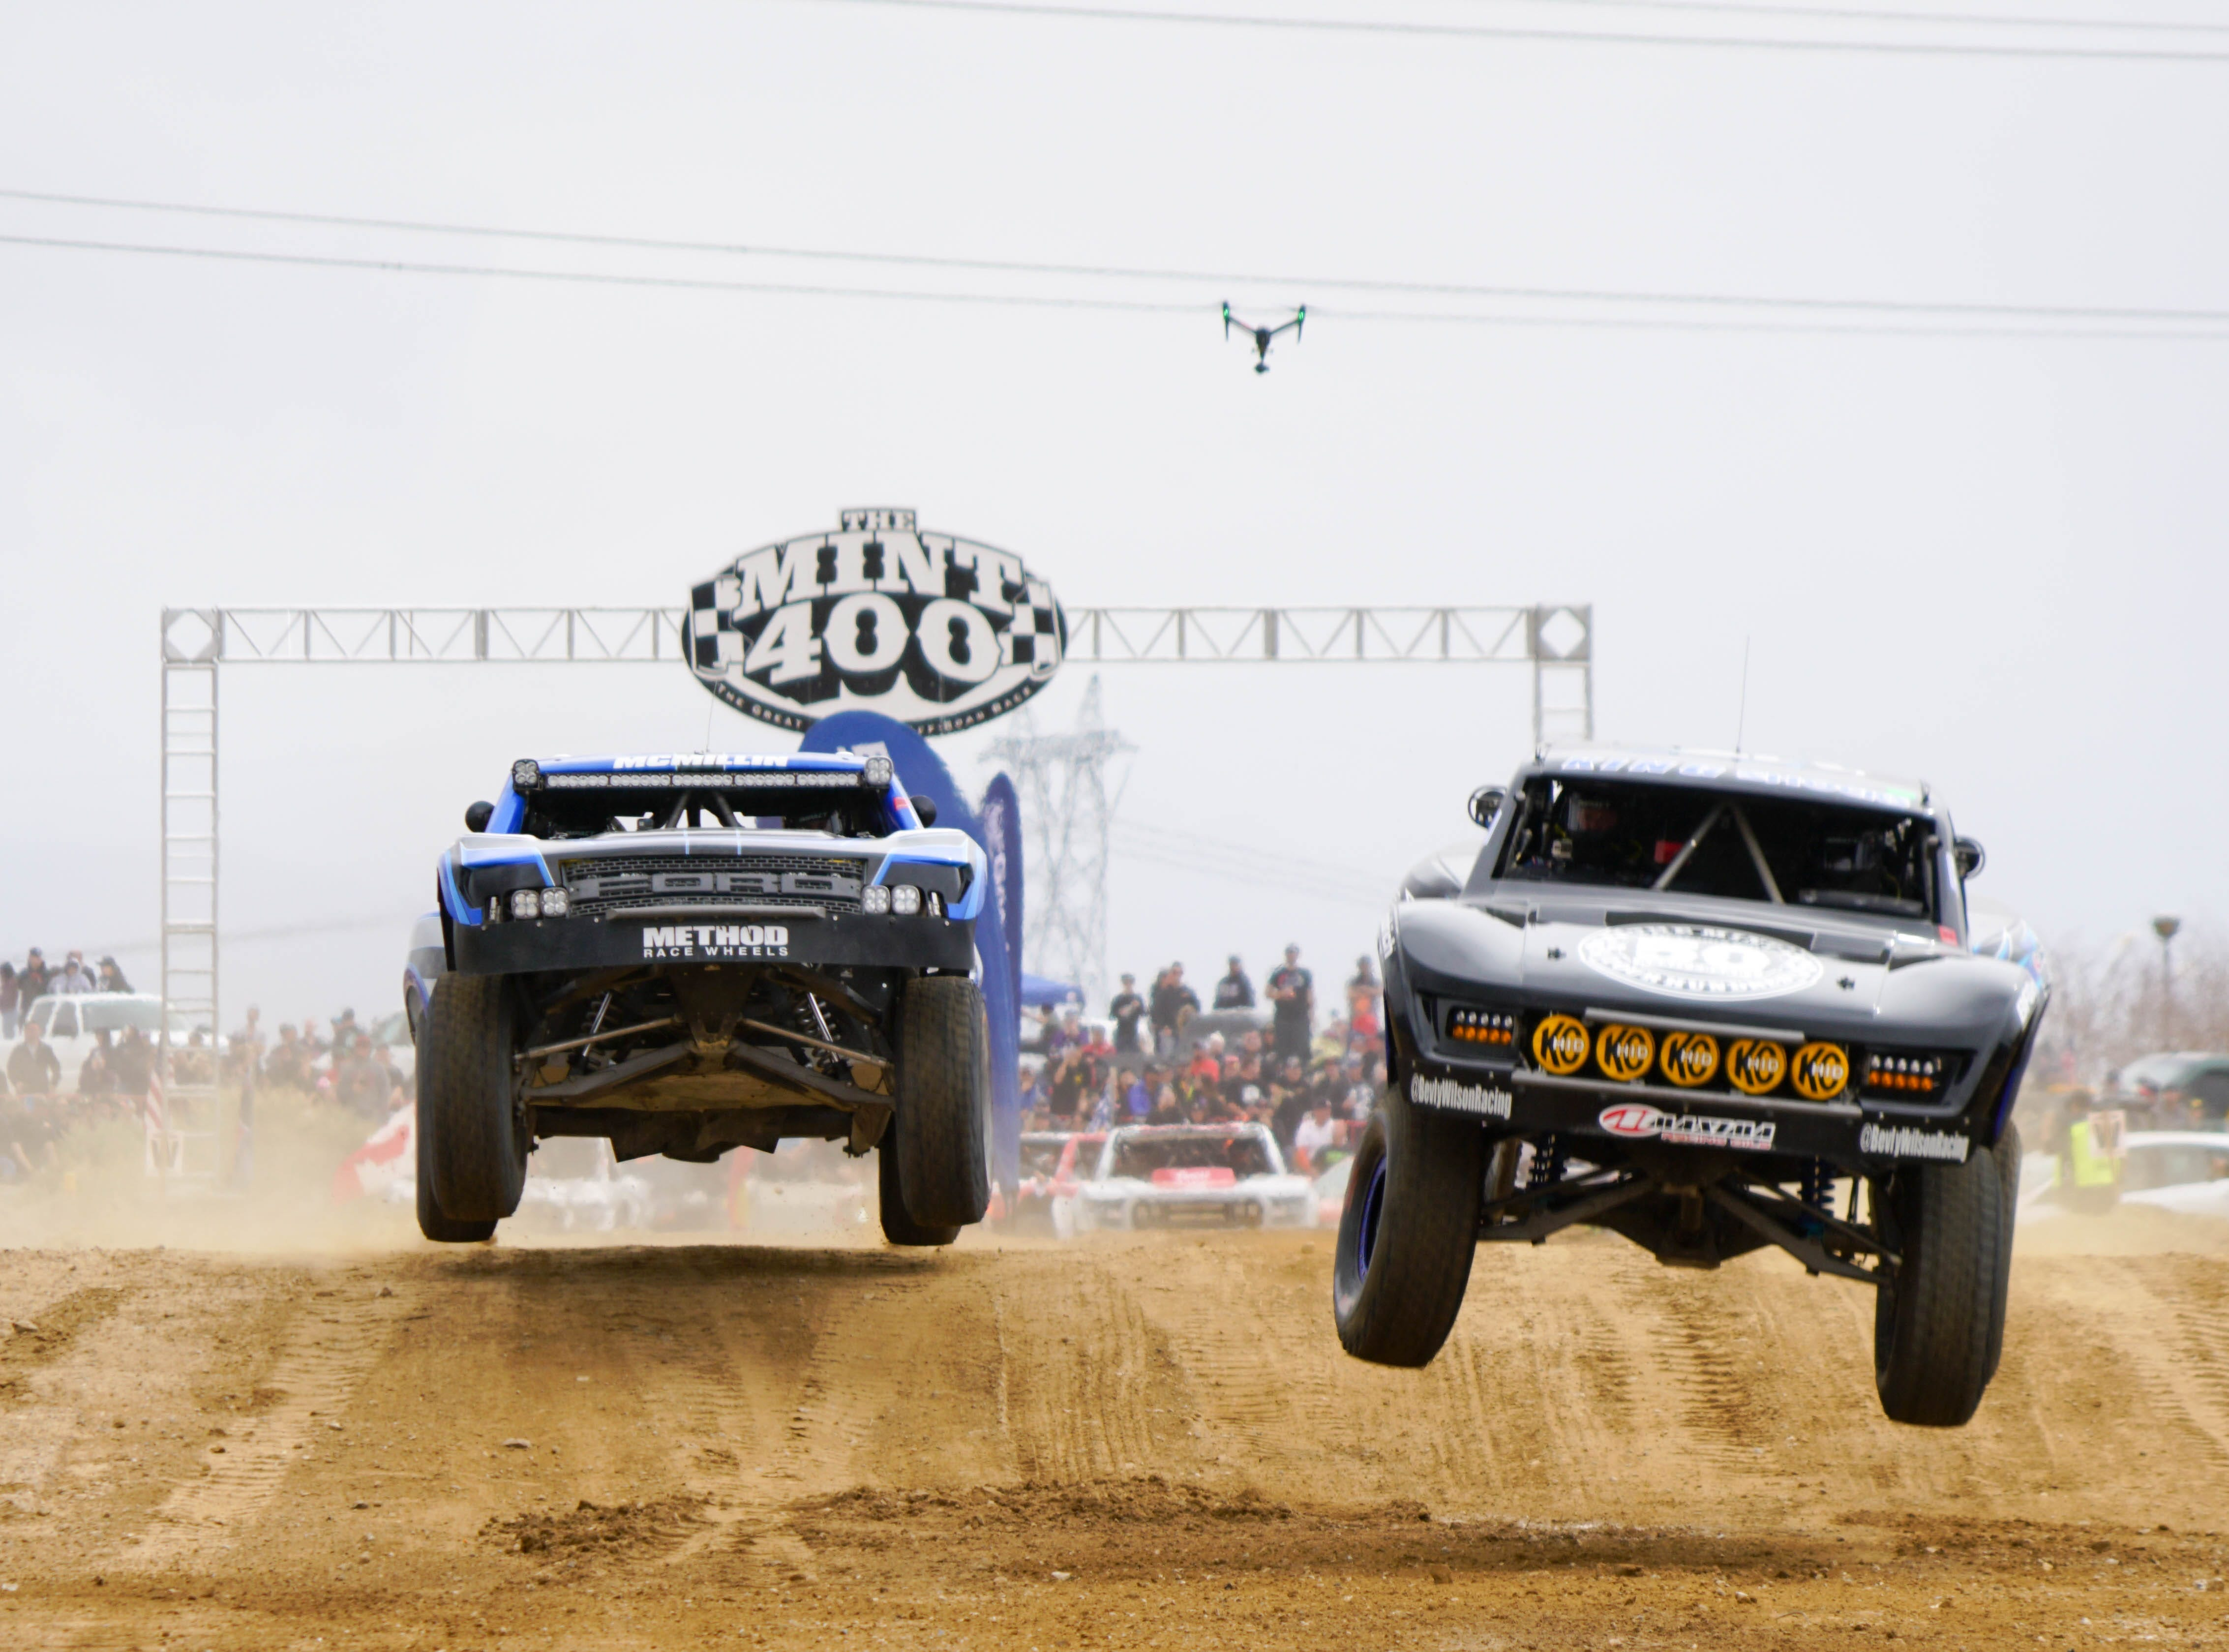 What's it like at the nation's largest off-road race? 'Amazing,' dirty and loud